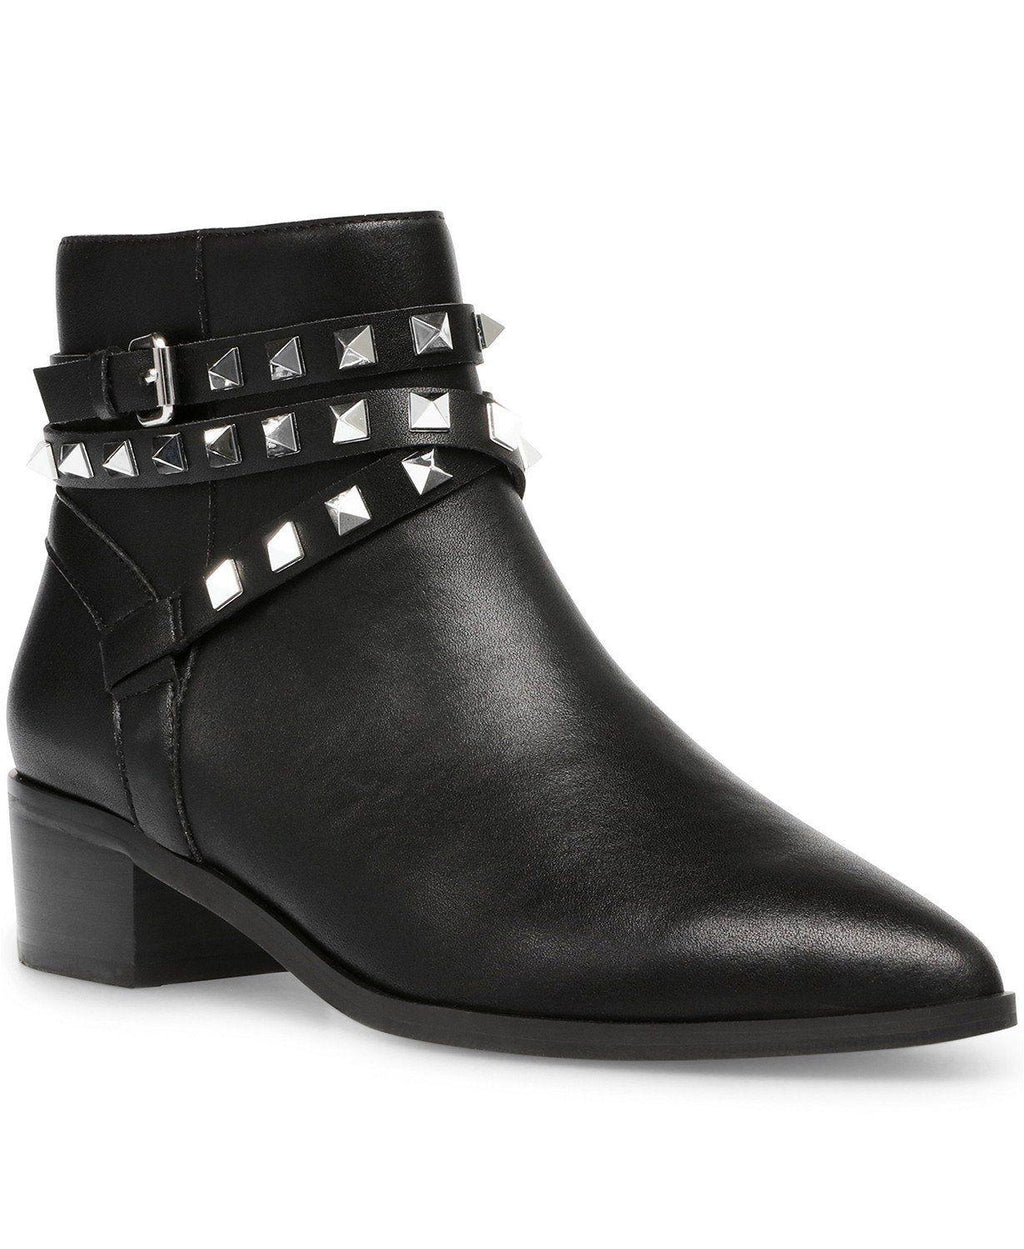 Steve Madden Leather Besto Studded Ankle Booties 8M or 9M New,your-fashions-for-less,Steve Madden,Boots.